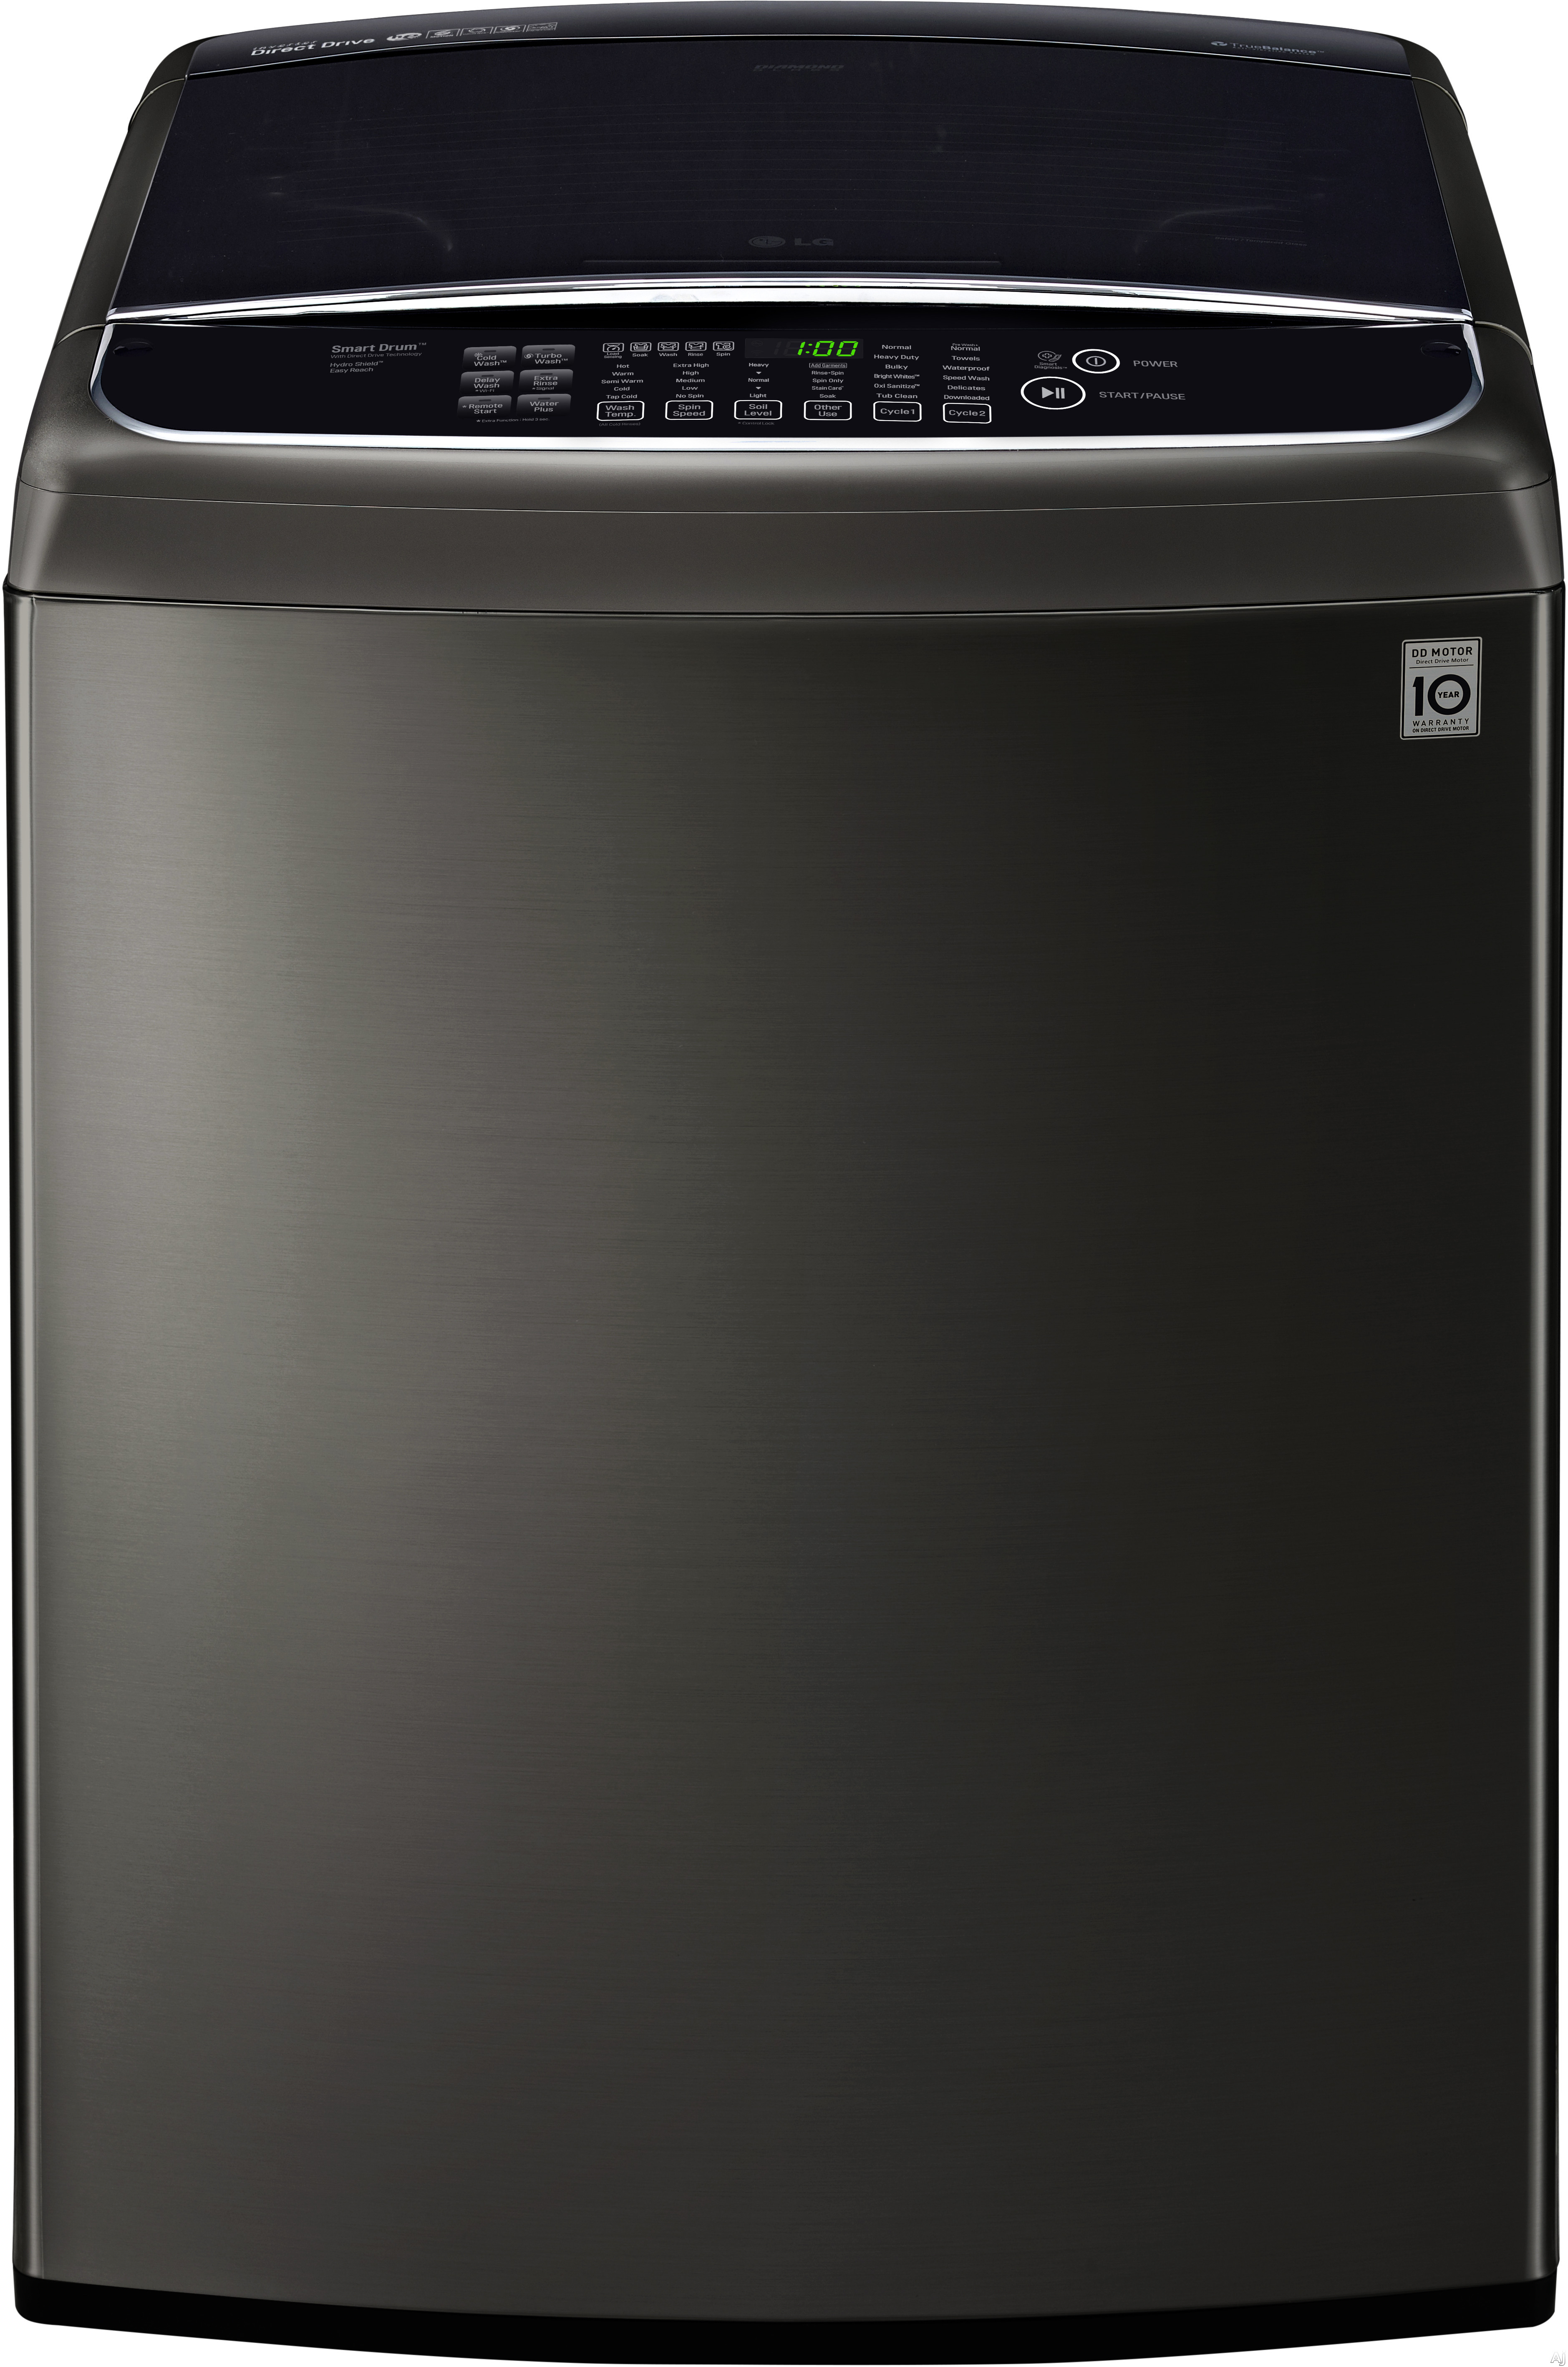 LG WT1901C 27 Inch Top Load Washer with TurboWash®, Slam Proof Lid, Wi-Fi Connectivity, LoadSense, 12 Wash Cycles, StainCare™ Option, Bright Whites™ Cycle, Speed Wash, 3 Tray Dispenser, ENERGY STAR® and 5.0 cu. ft. Ultra Large Capacity